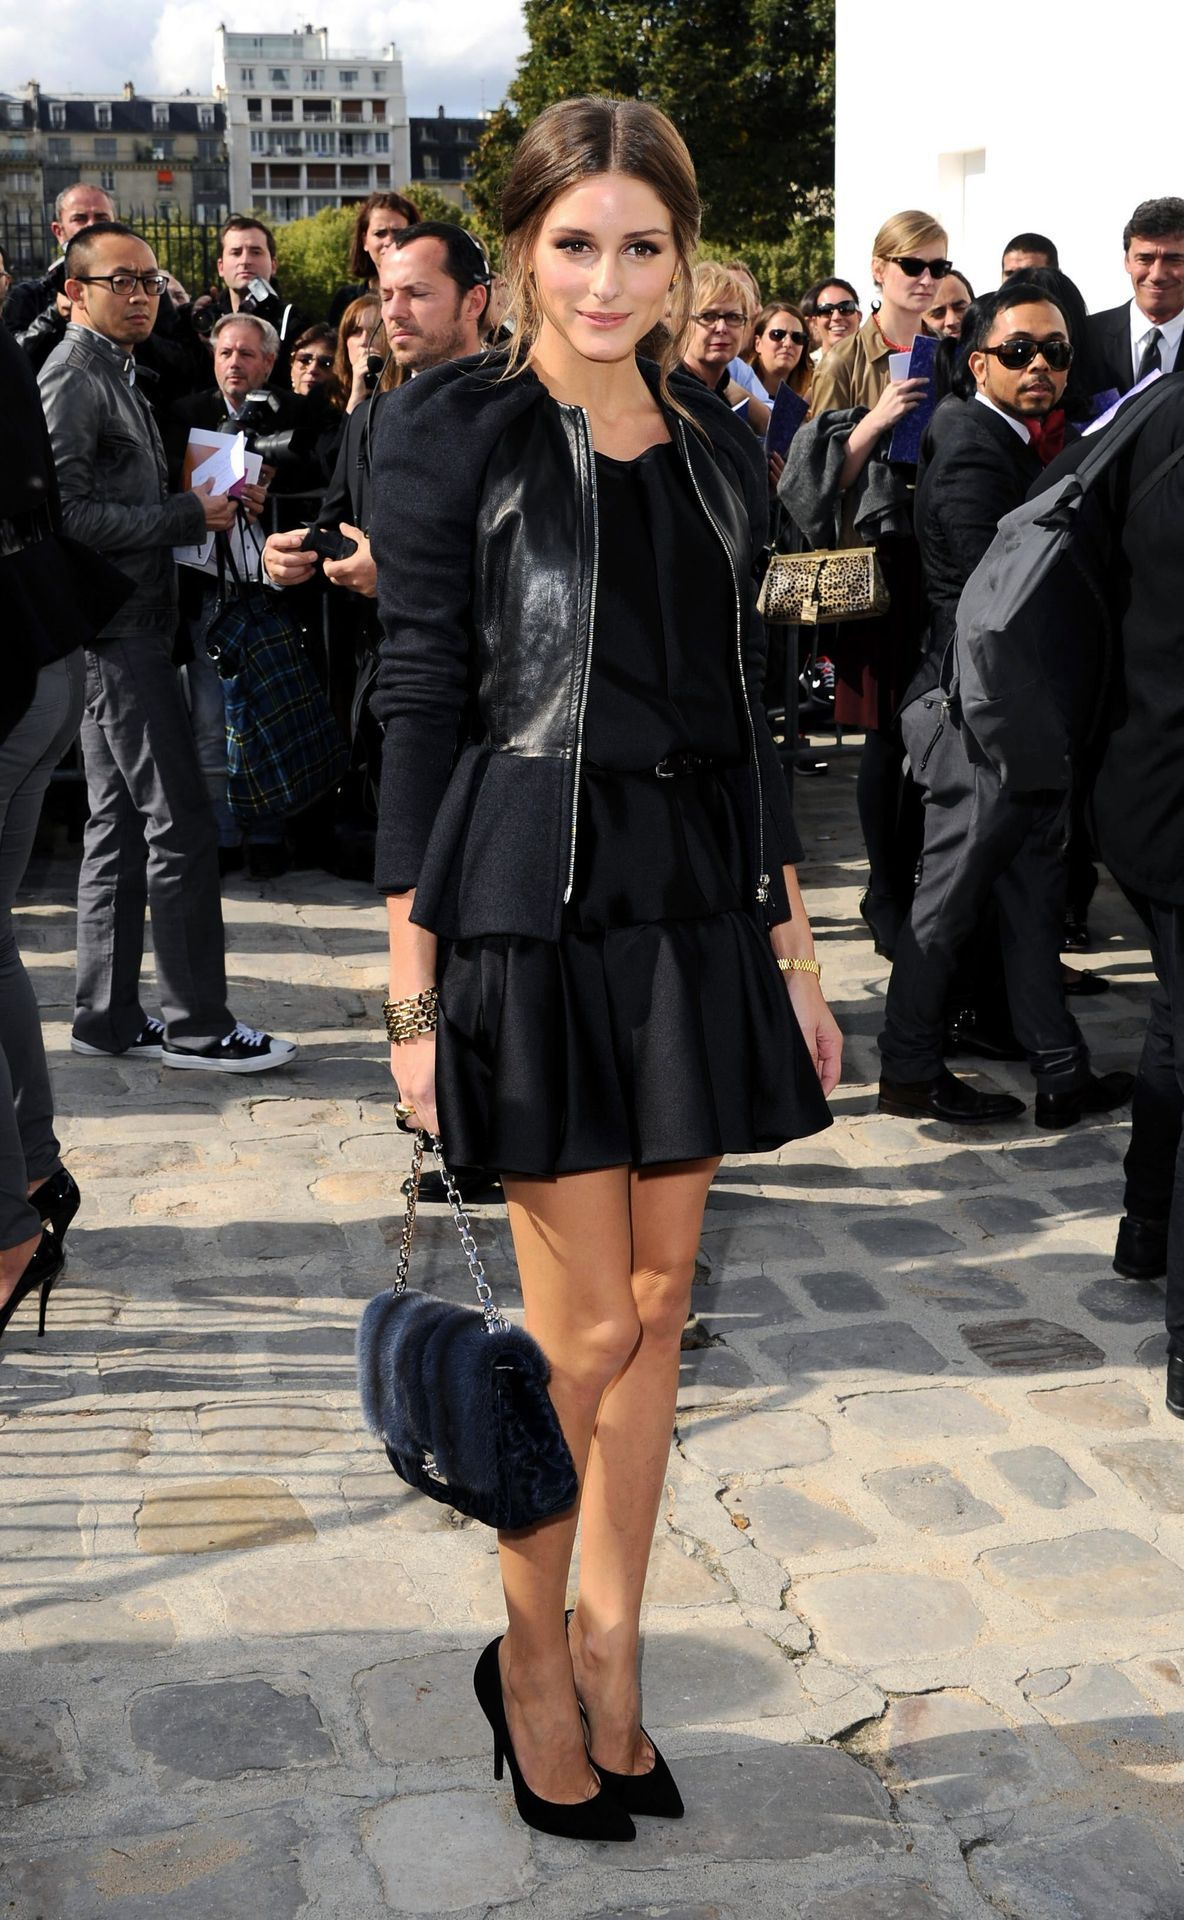 why do we consider all black so high fashion? Just wondering. I like the shape of this skirt though